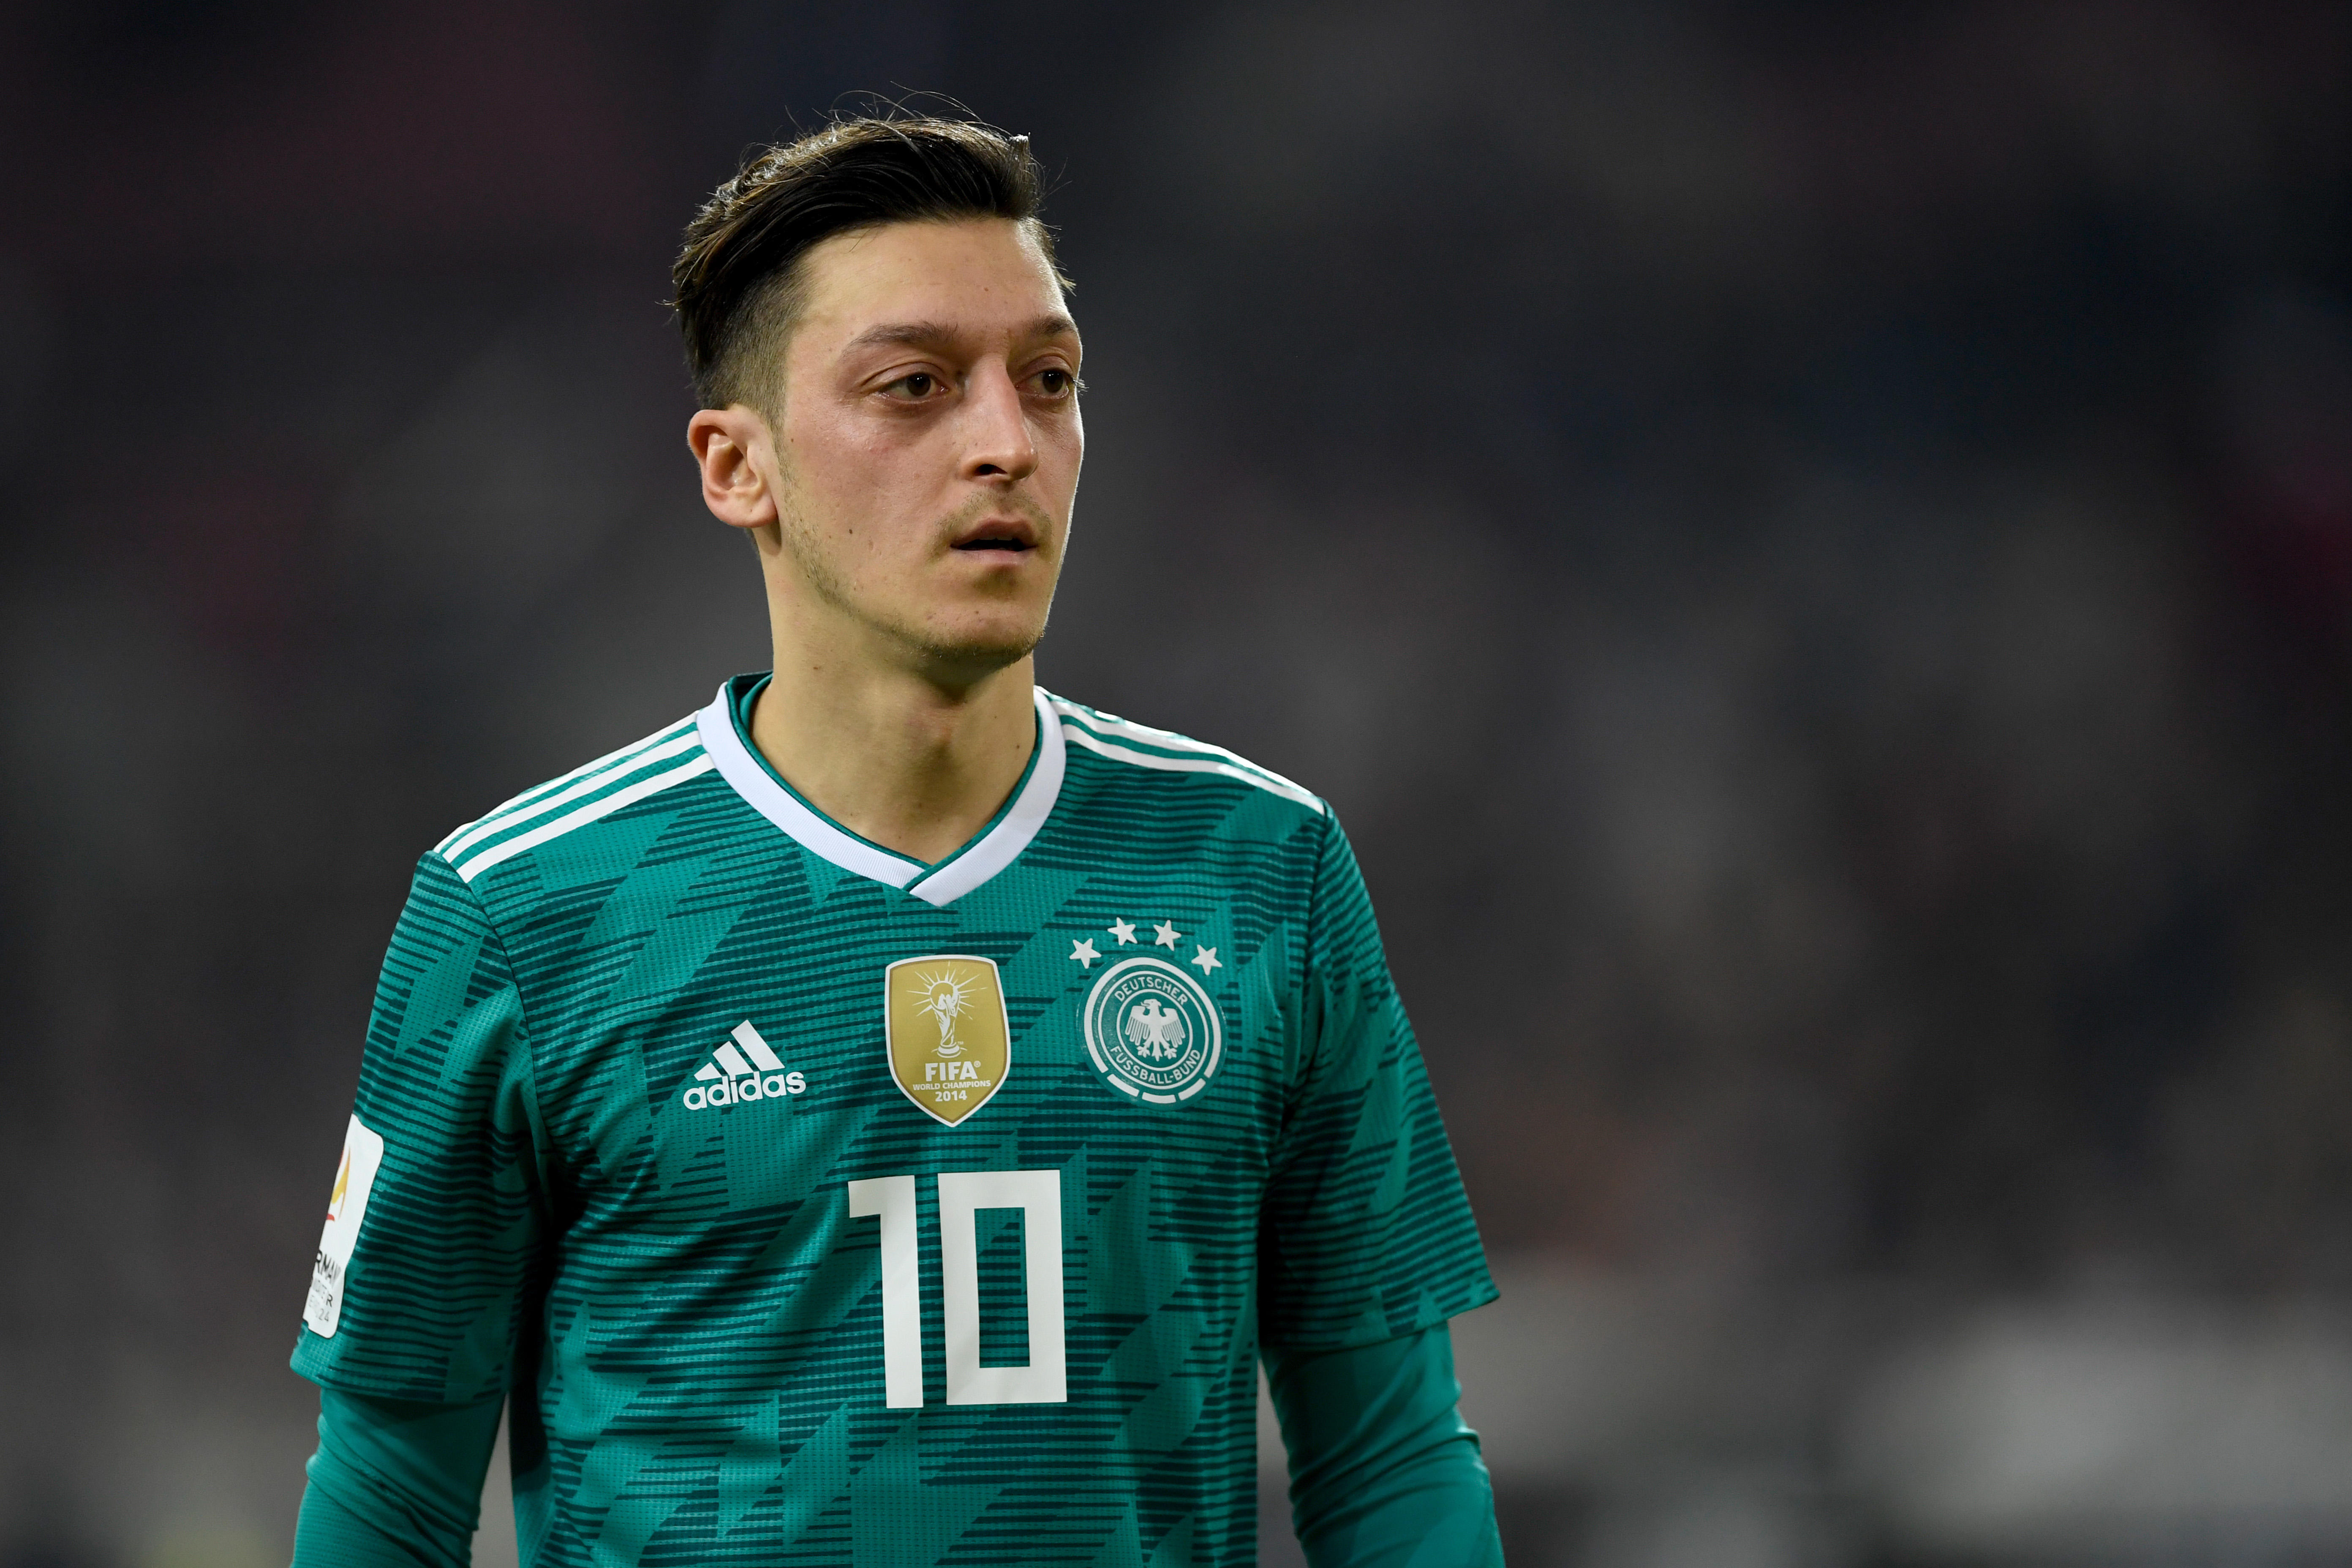 Mesut Özil quits German national team over alleged racism